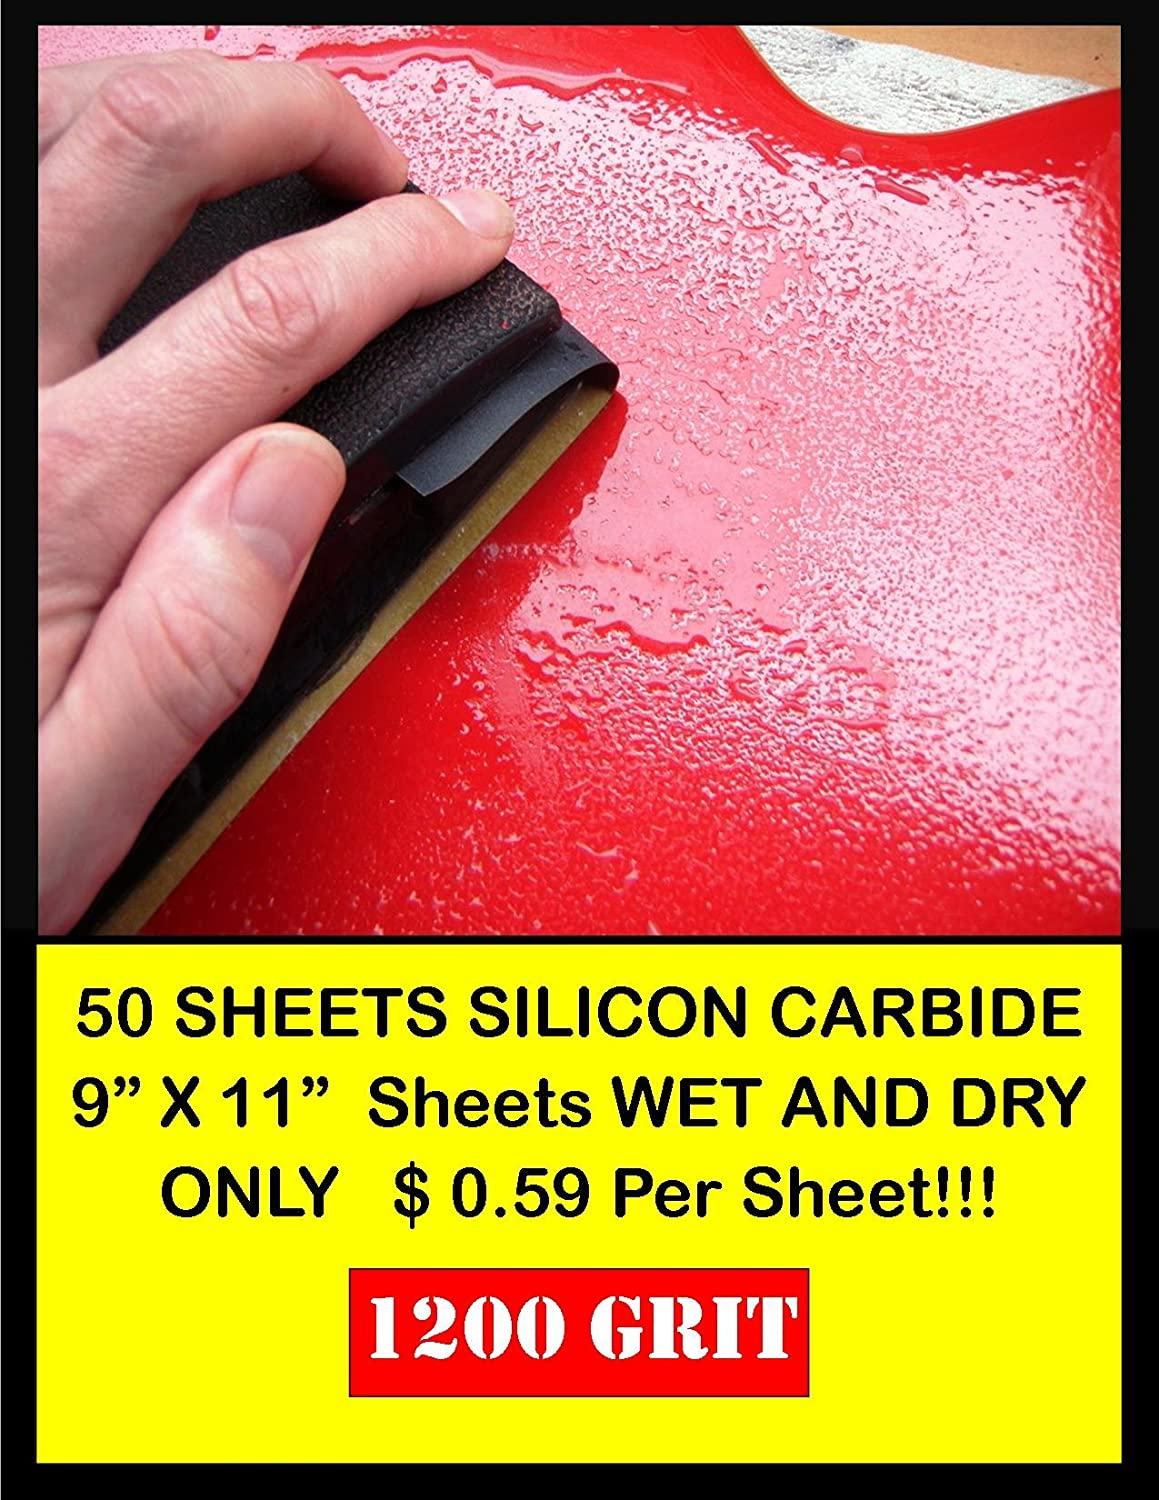 Fuji Star 50 Sheet Wet Dry Limited price sale Carbide Albuquerque Mall Pap Grit 1200 Silicone Sand